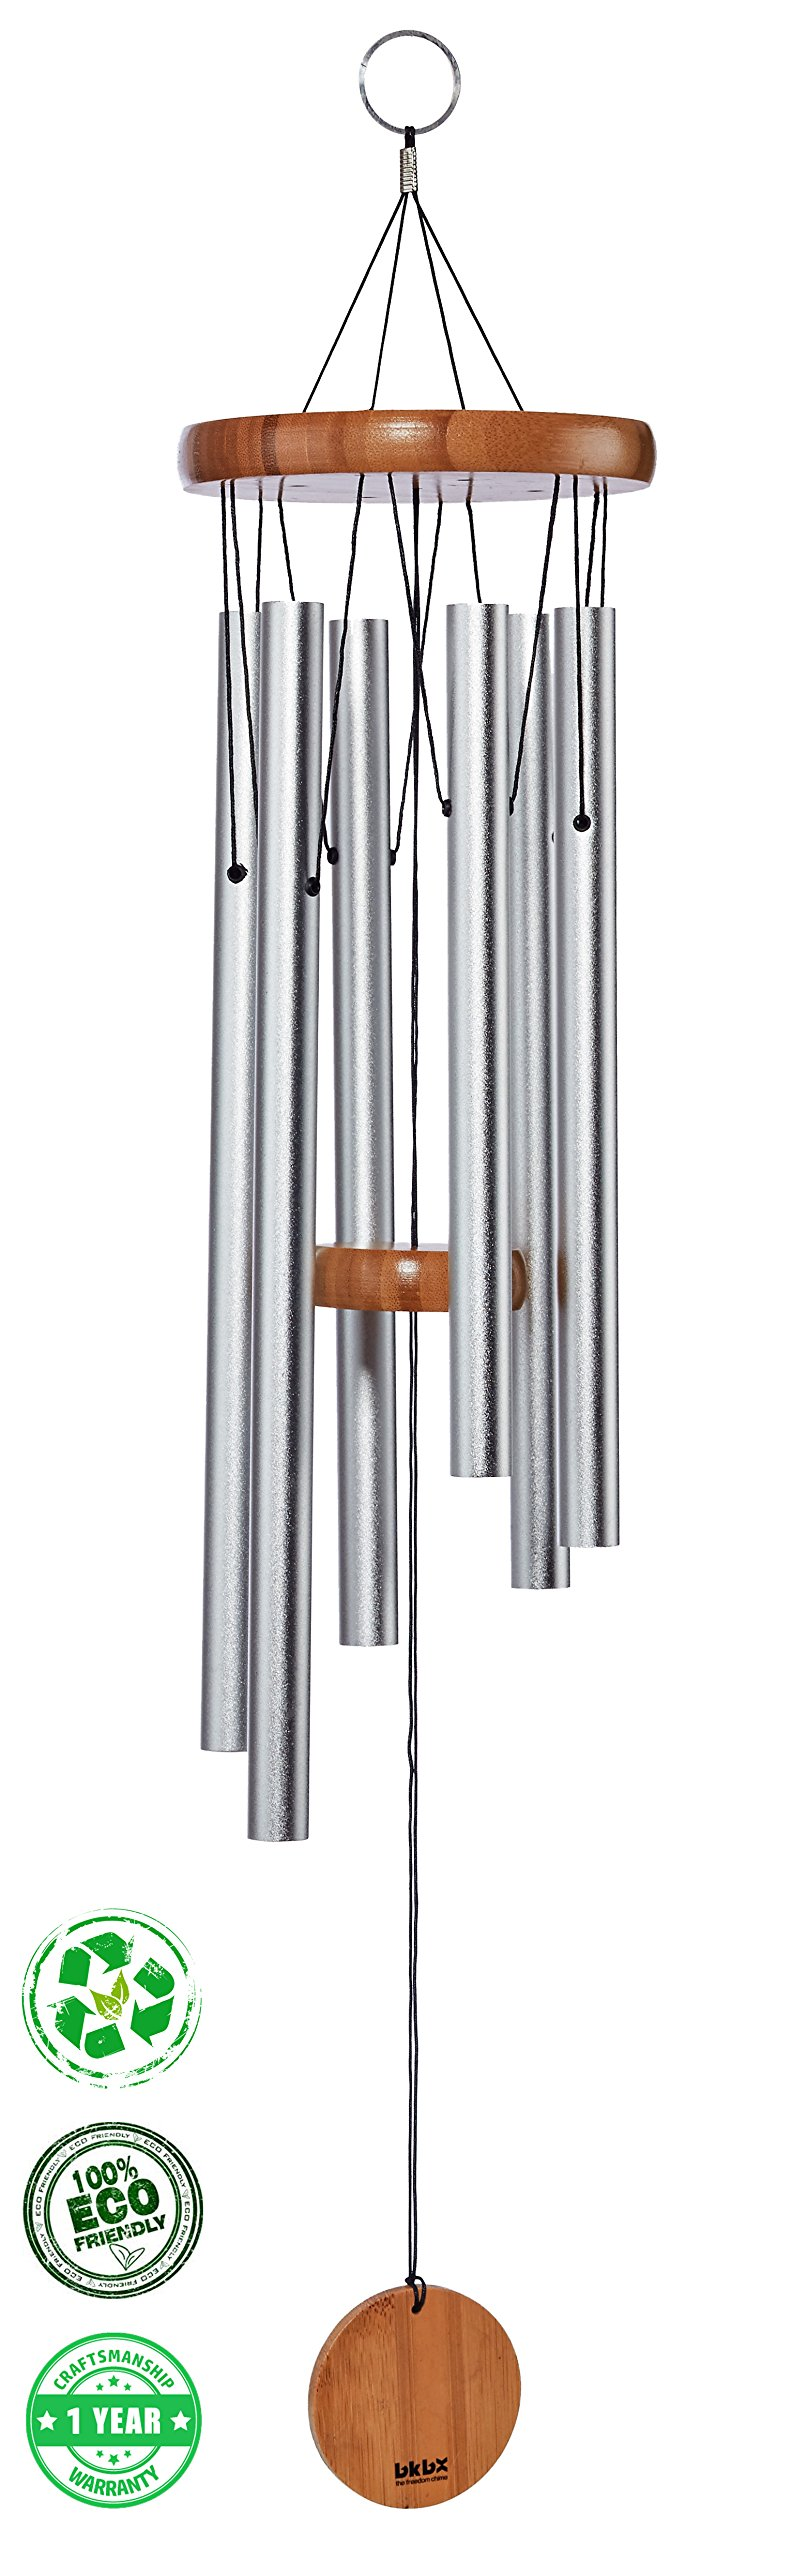 Brooklyn Basix Freedom Chime for Patio, Garden, Terrace and Balcony - Beautiful Outdoor Decor - Easy to Install Wind Chimes - Durable and Hand Tuned (Natural/Matte Silver, Medium 29'')